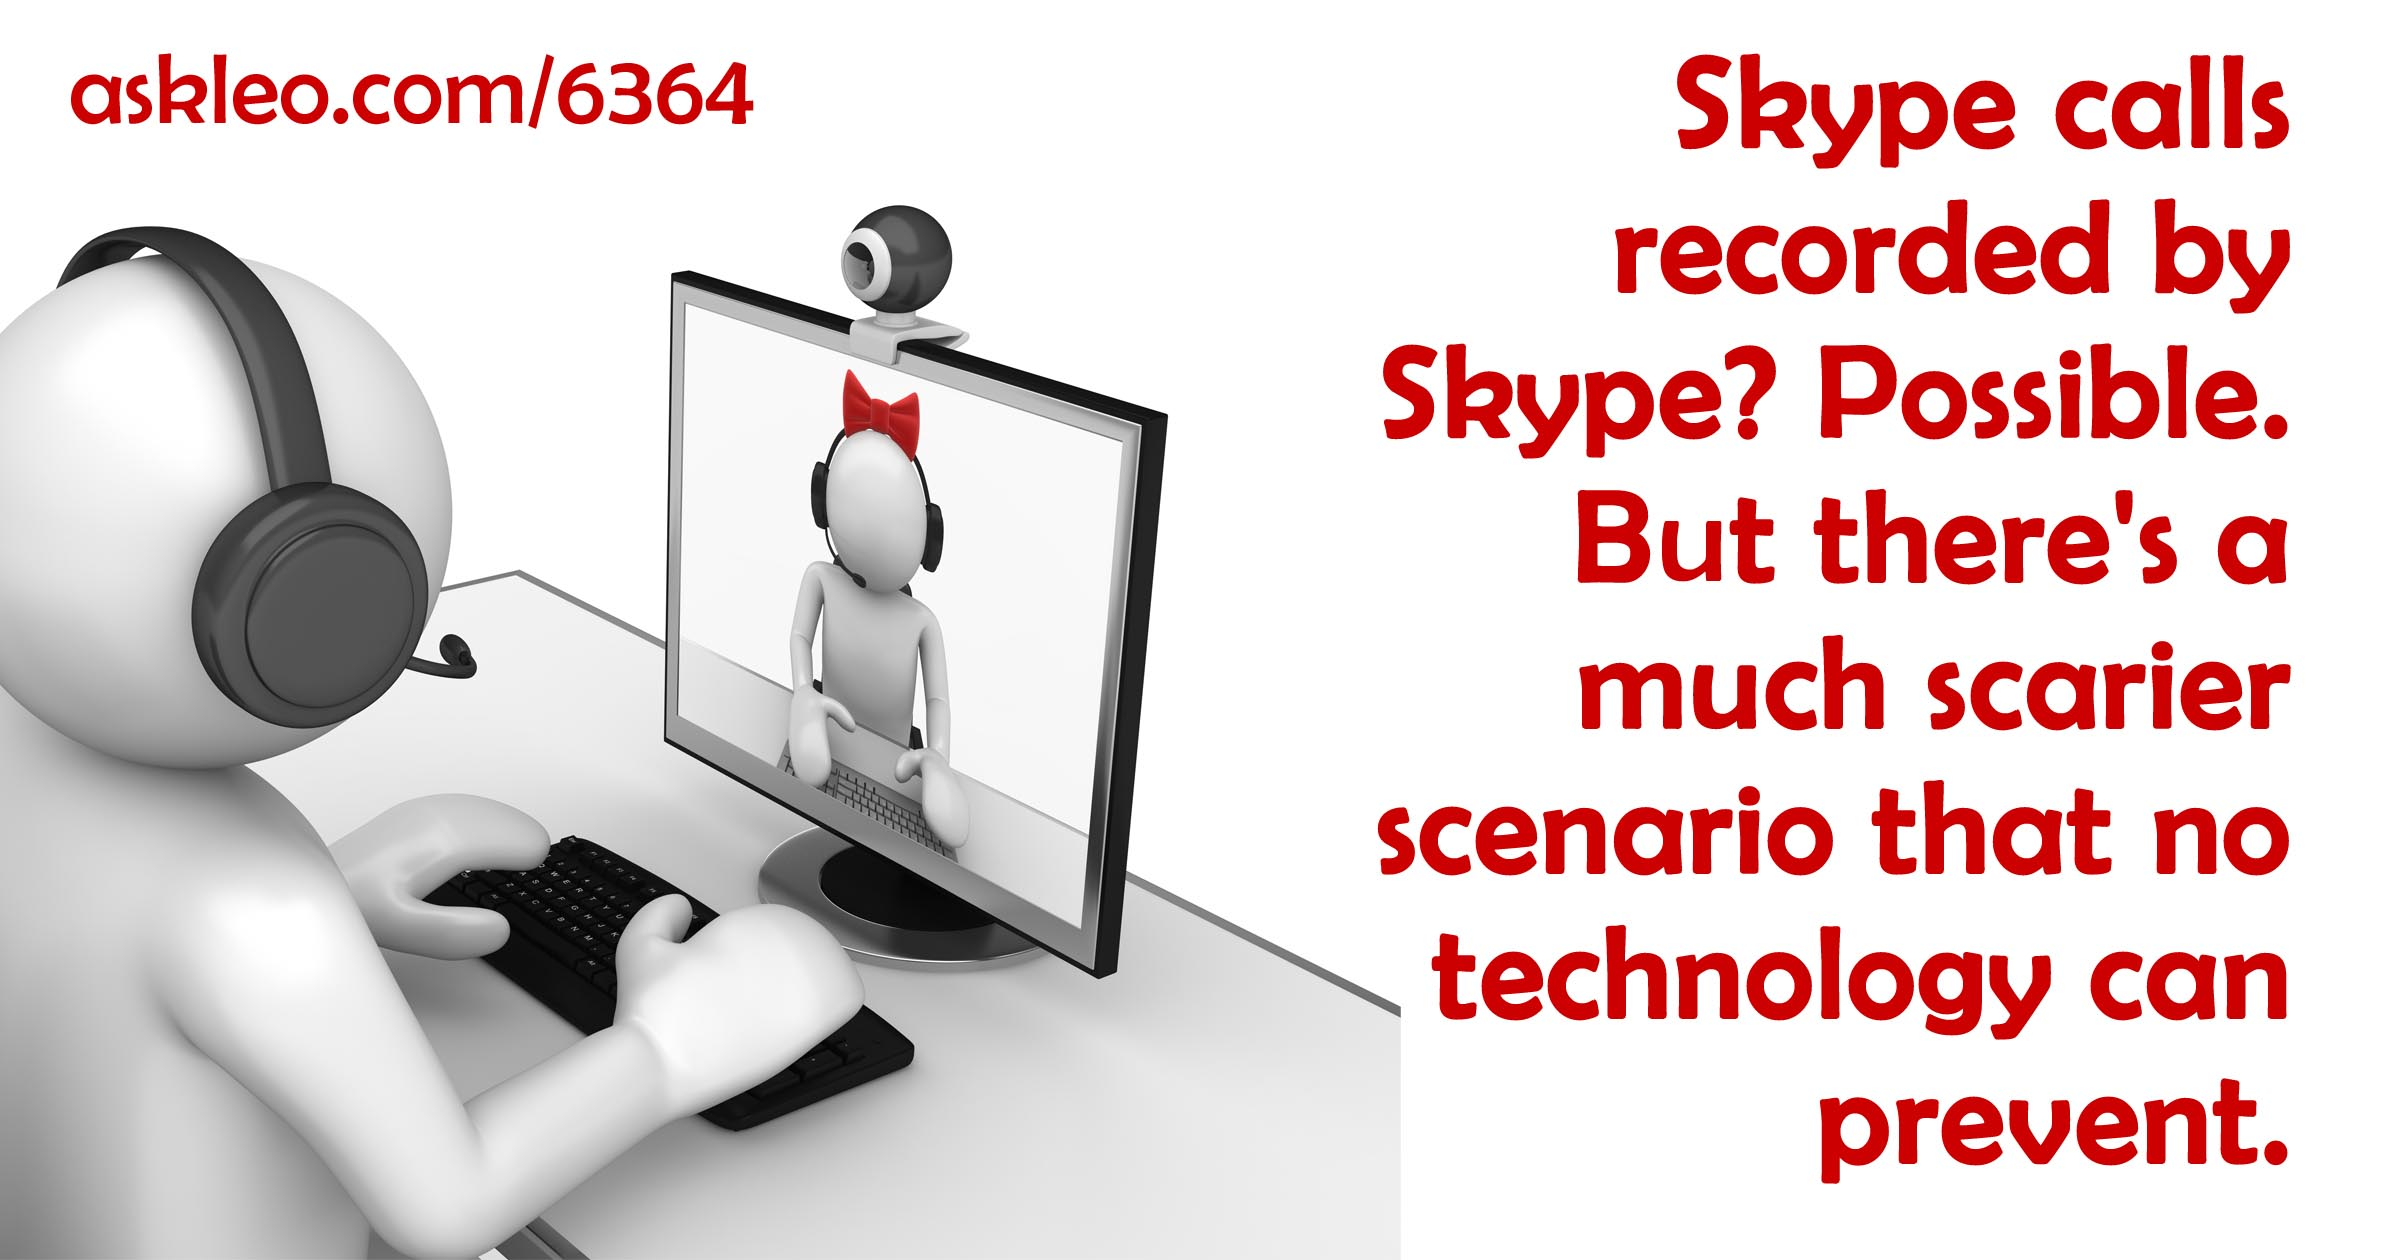 Are My Skype Calls Recorded?